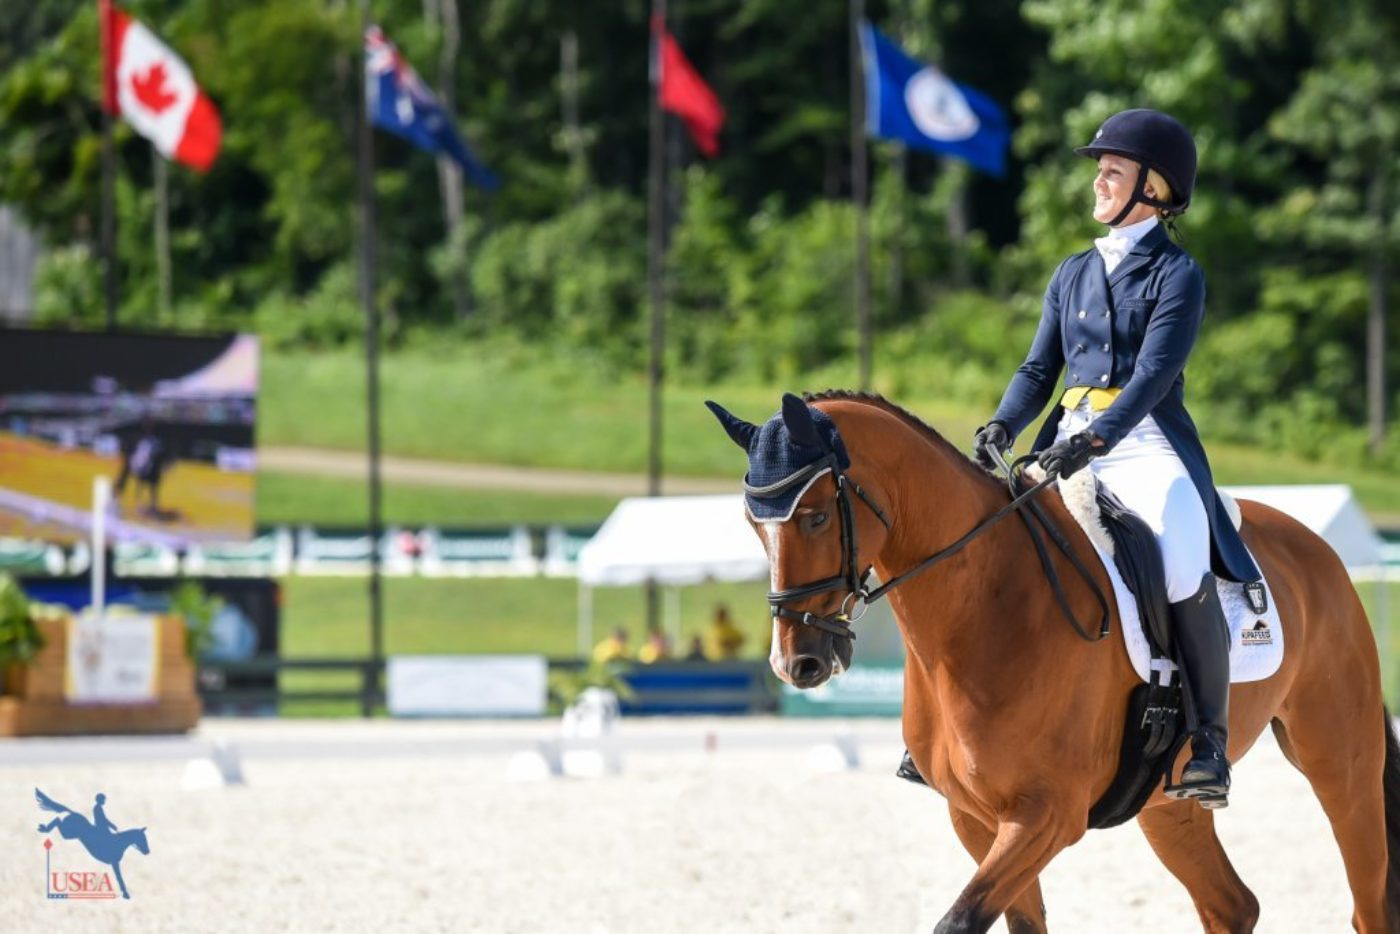 Allison Springer and Lord Willing ready to dance in the sandbox. USEA/Jessica Duffy Photo.